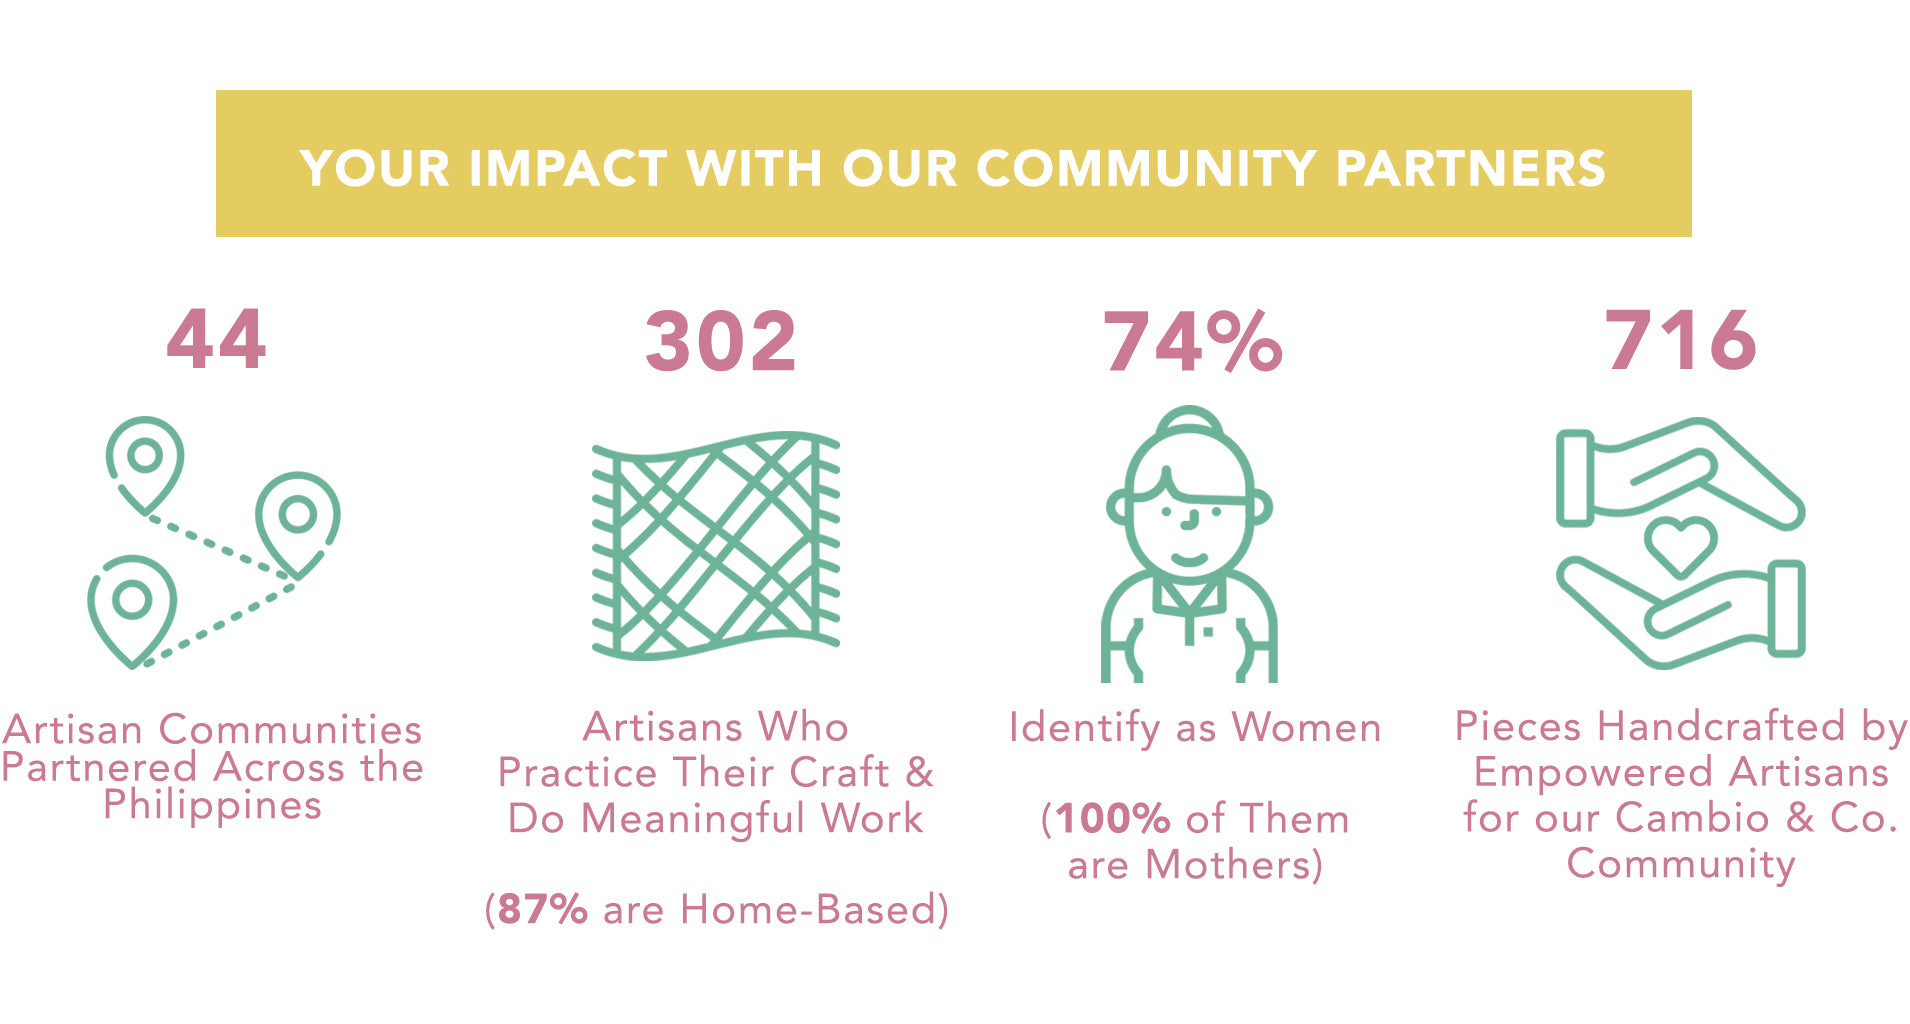 Cambio & Co. Impact with our Community Partners